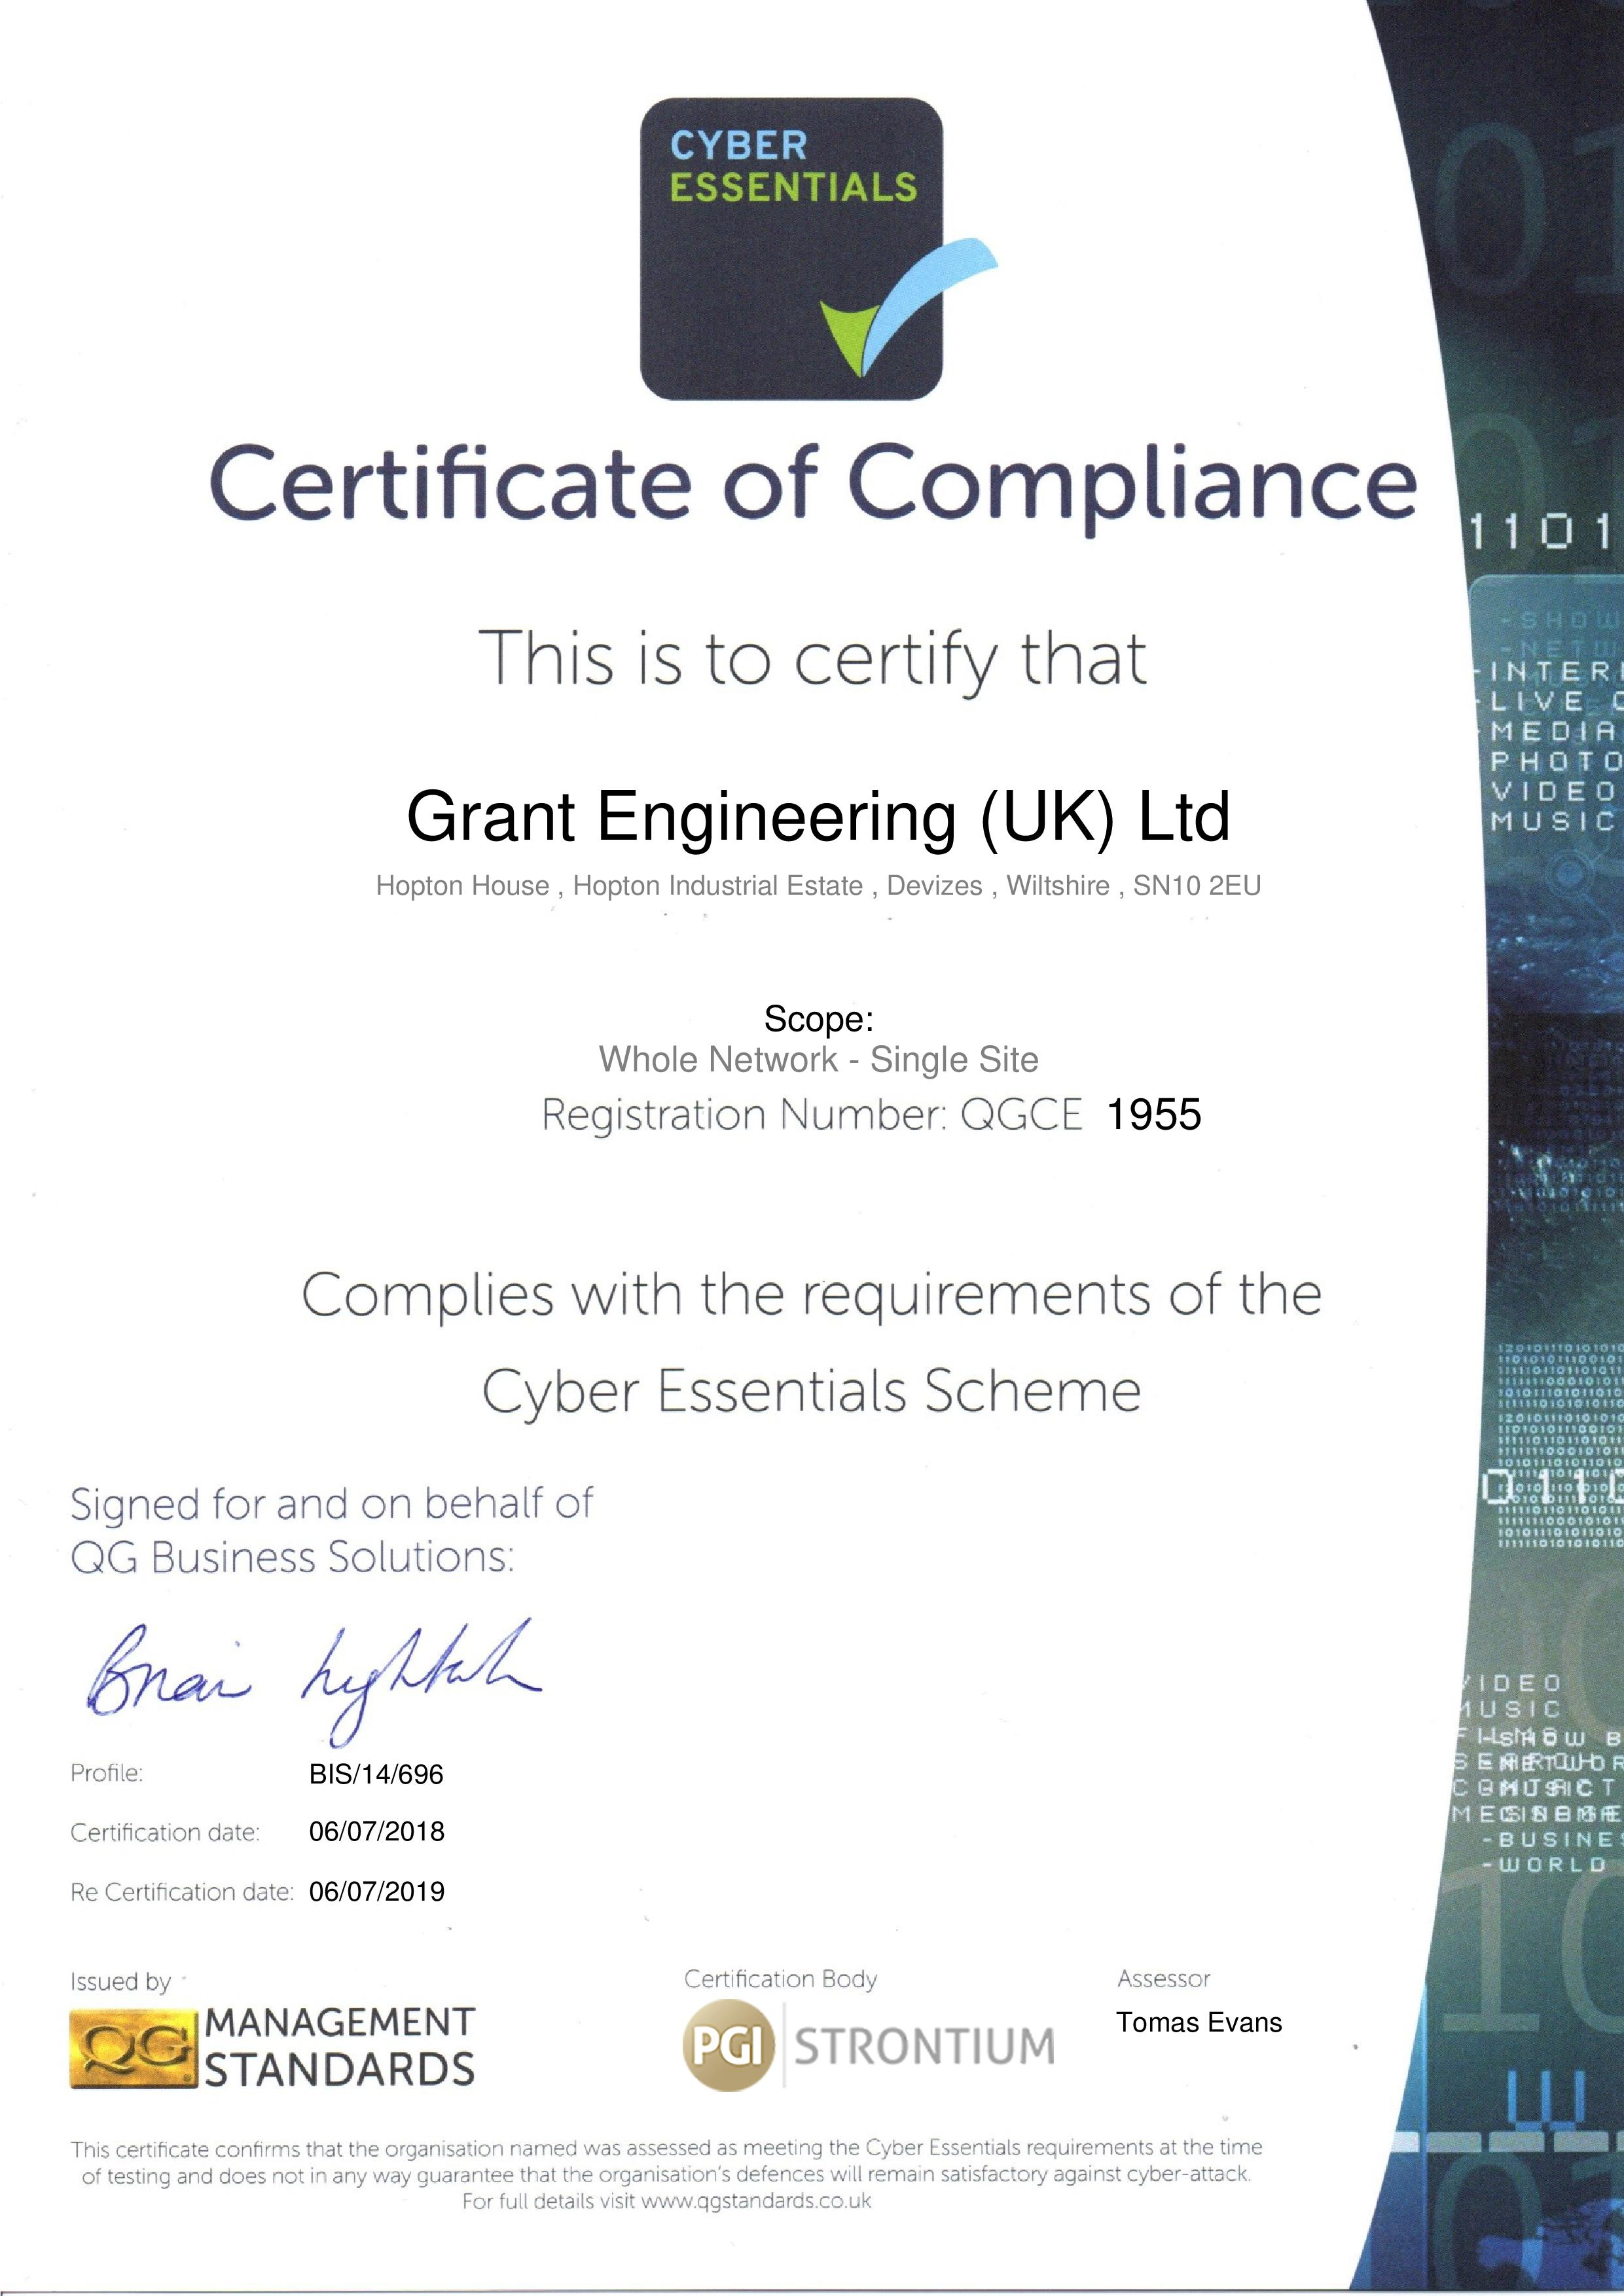 QGCE1955 Grant Engineering (UK) Ltd